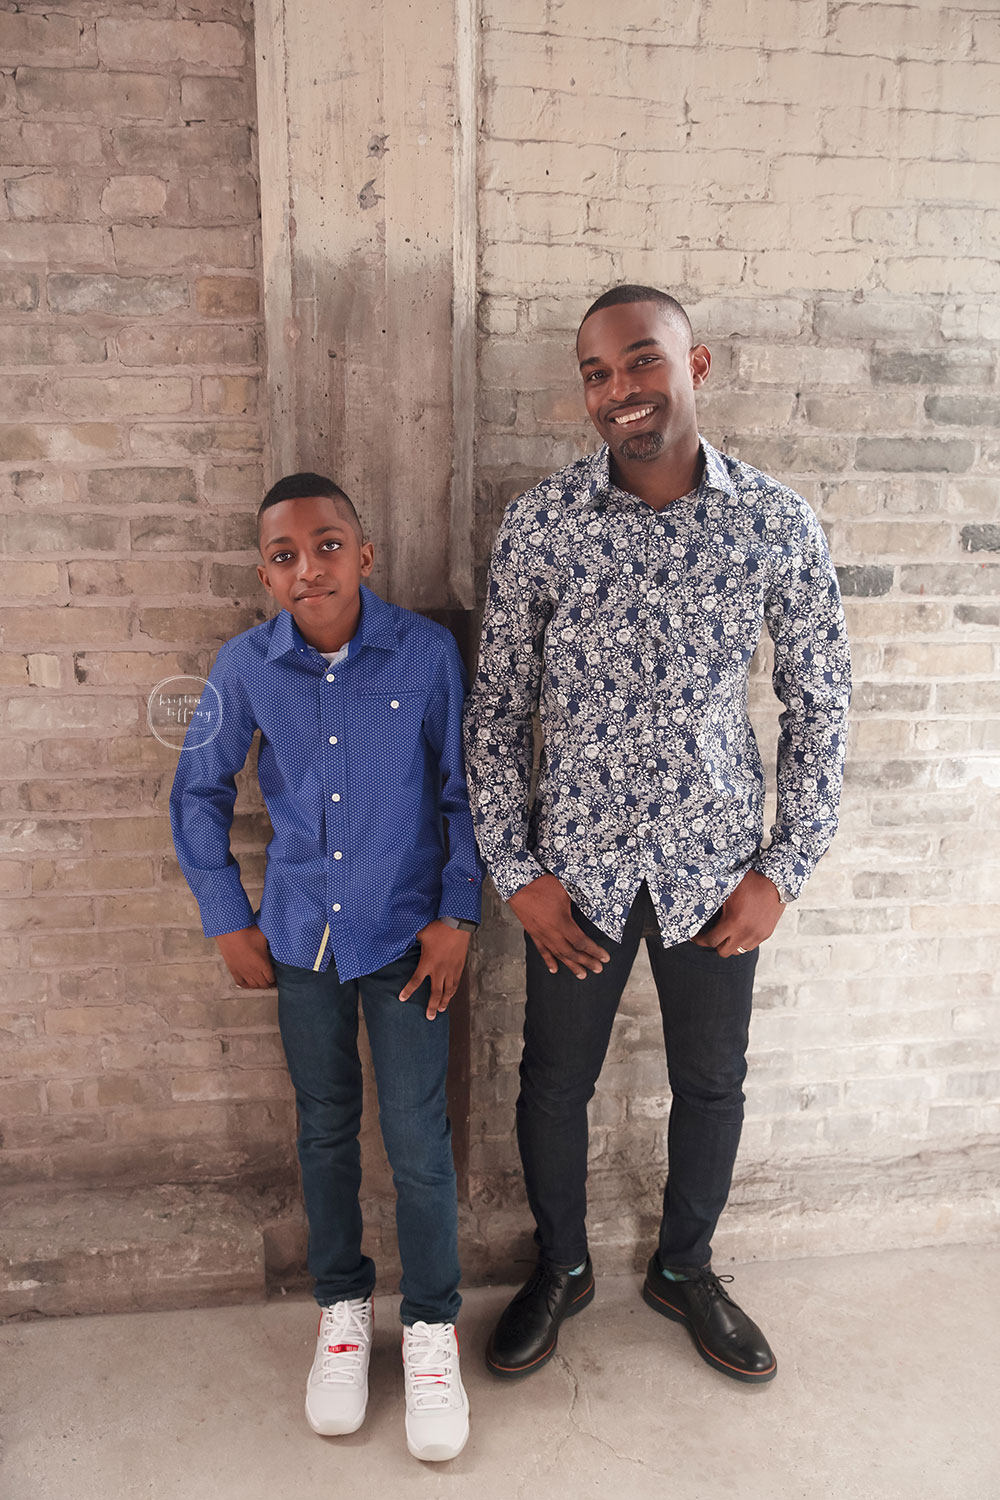 a photo of a father and son by a brick wall